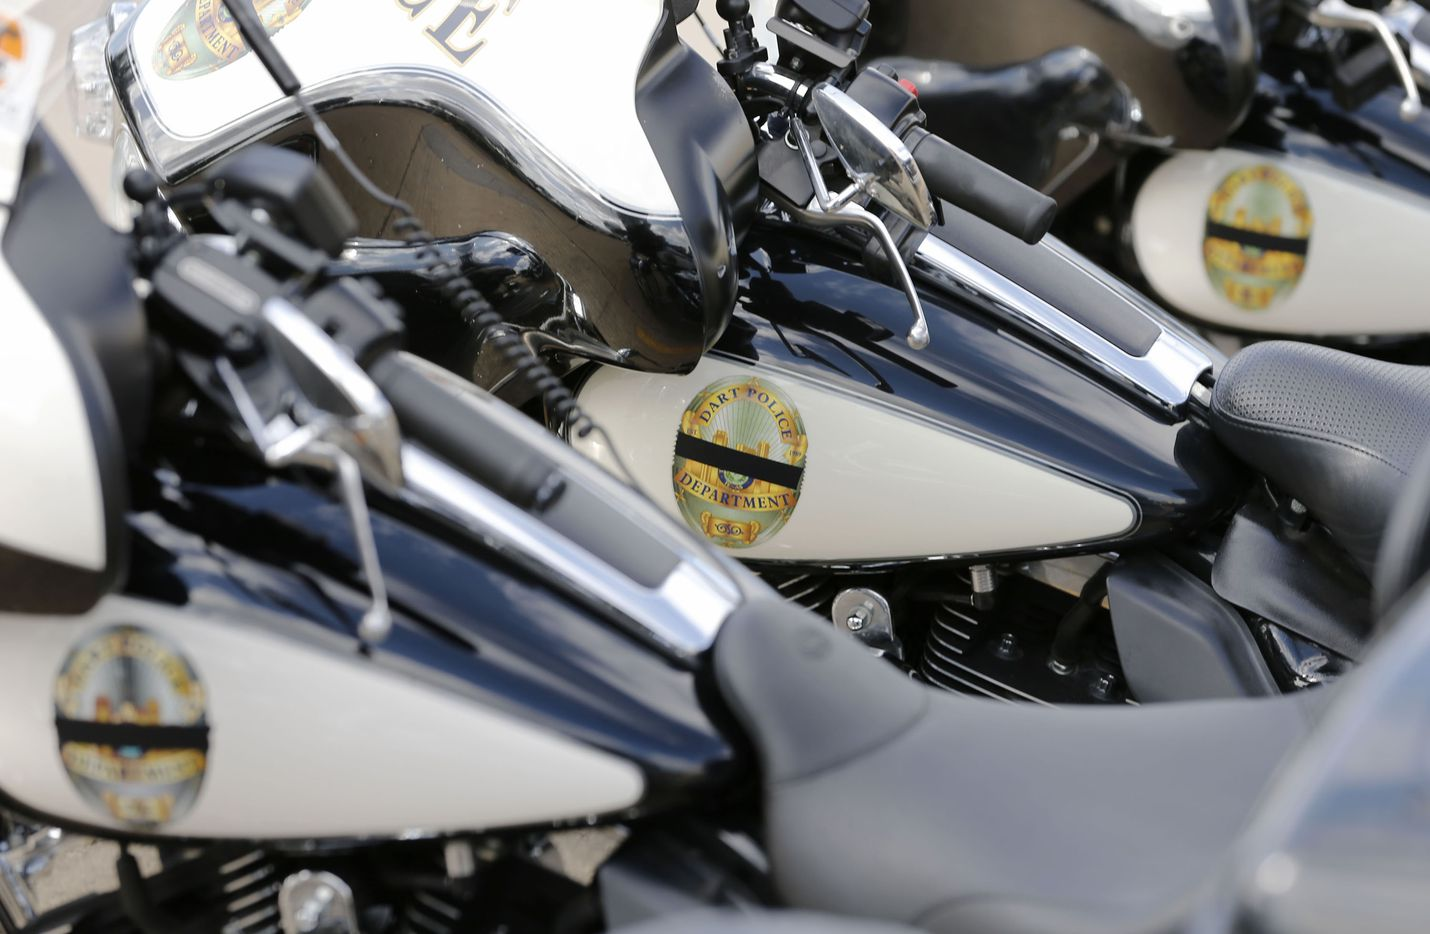 DART motorcycles parked out front during a memorial service for DART Officer Brent Thompson at The Potter's House in Dallas on Wednesday, July 13, 2016. Thompson was one of five officers killed last week when a gunman opened fire during a Black Lives Matter rally in downtown Dallas.